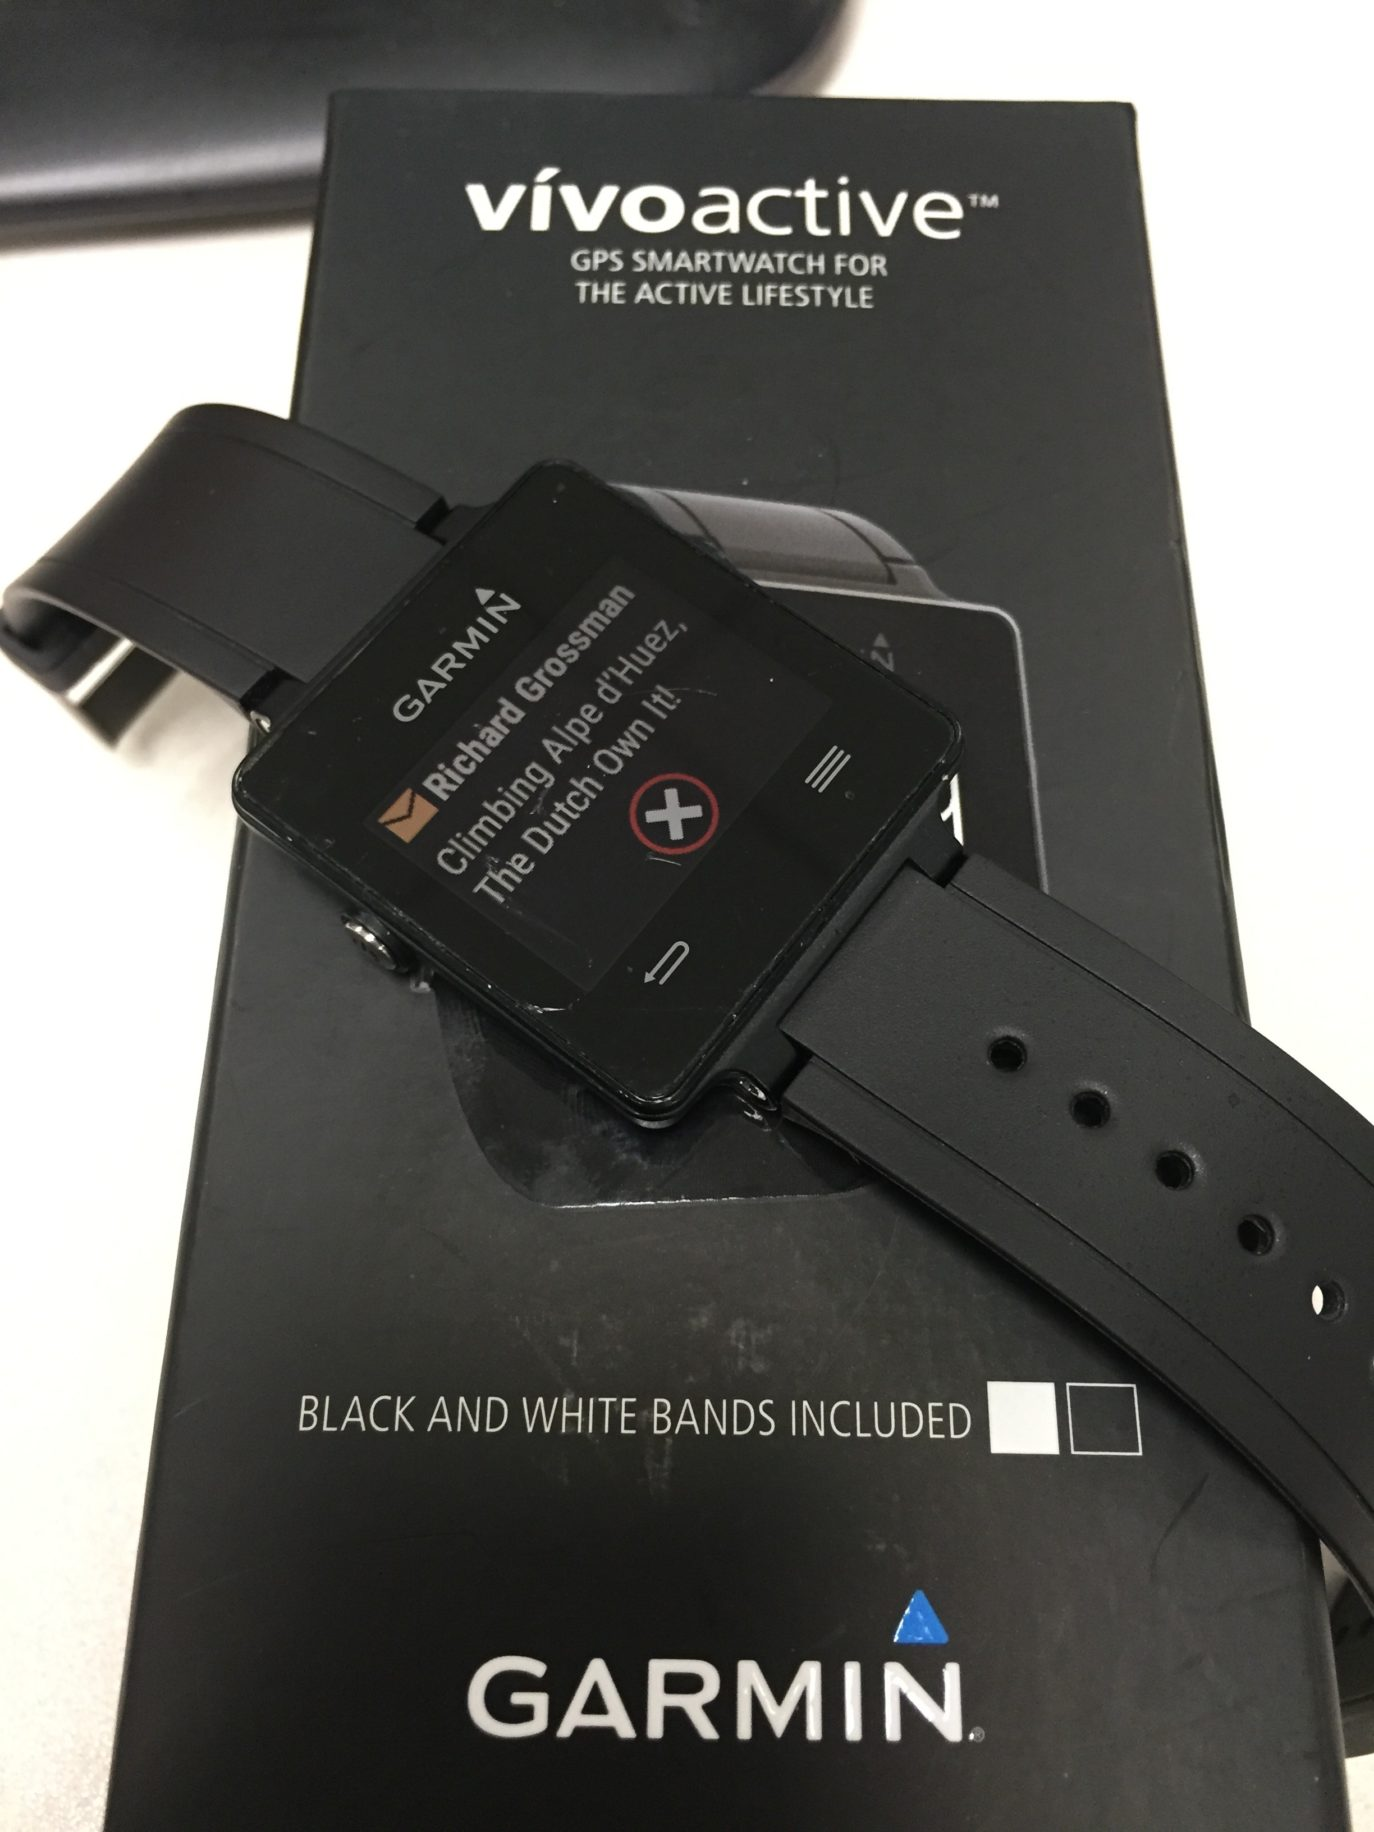 Garmin Vivoactive - A Solid Sports Watch In Smartwatch Clothing